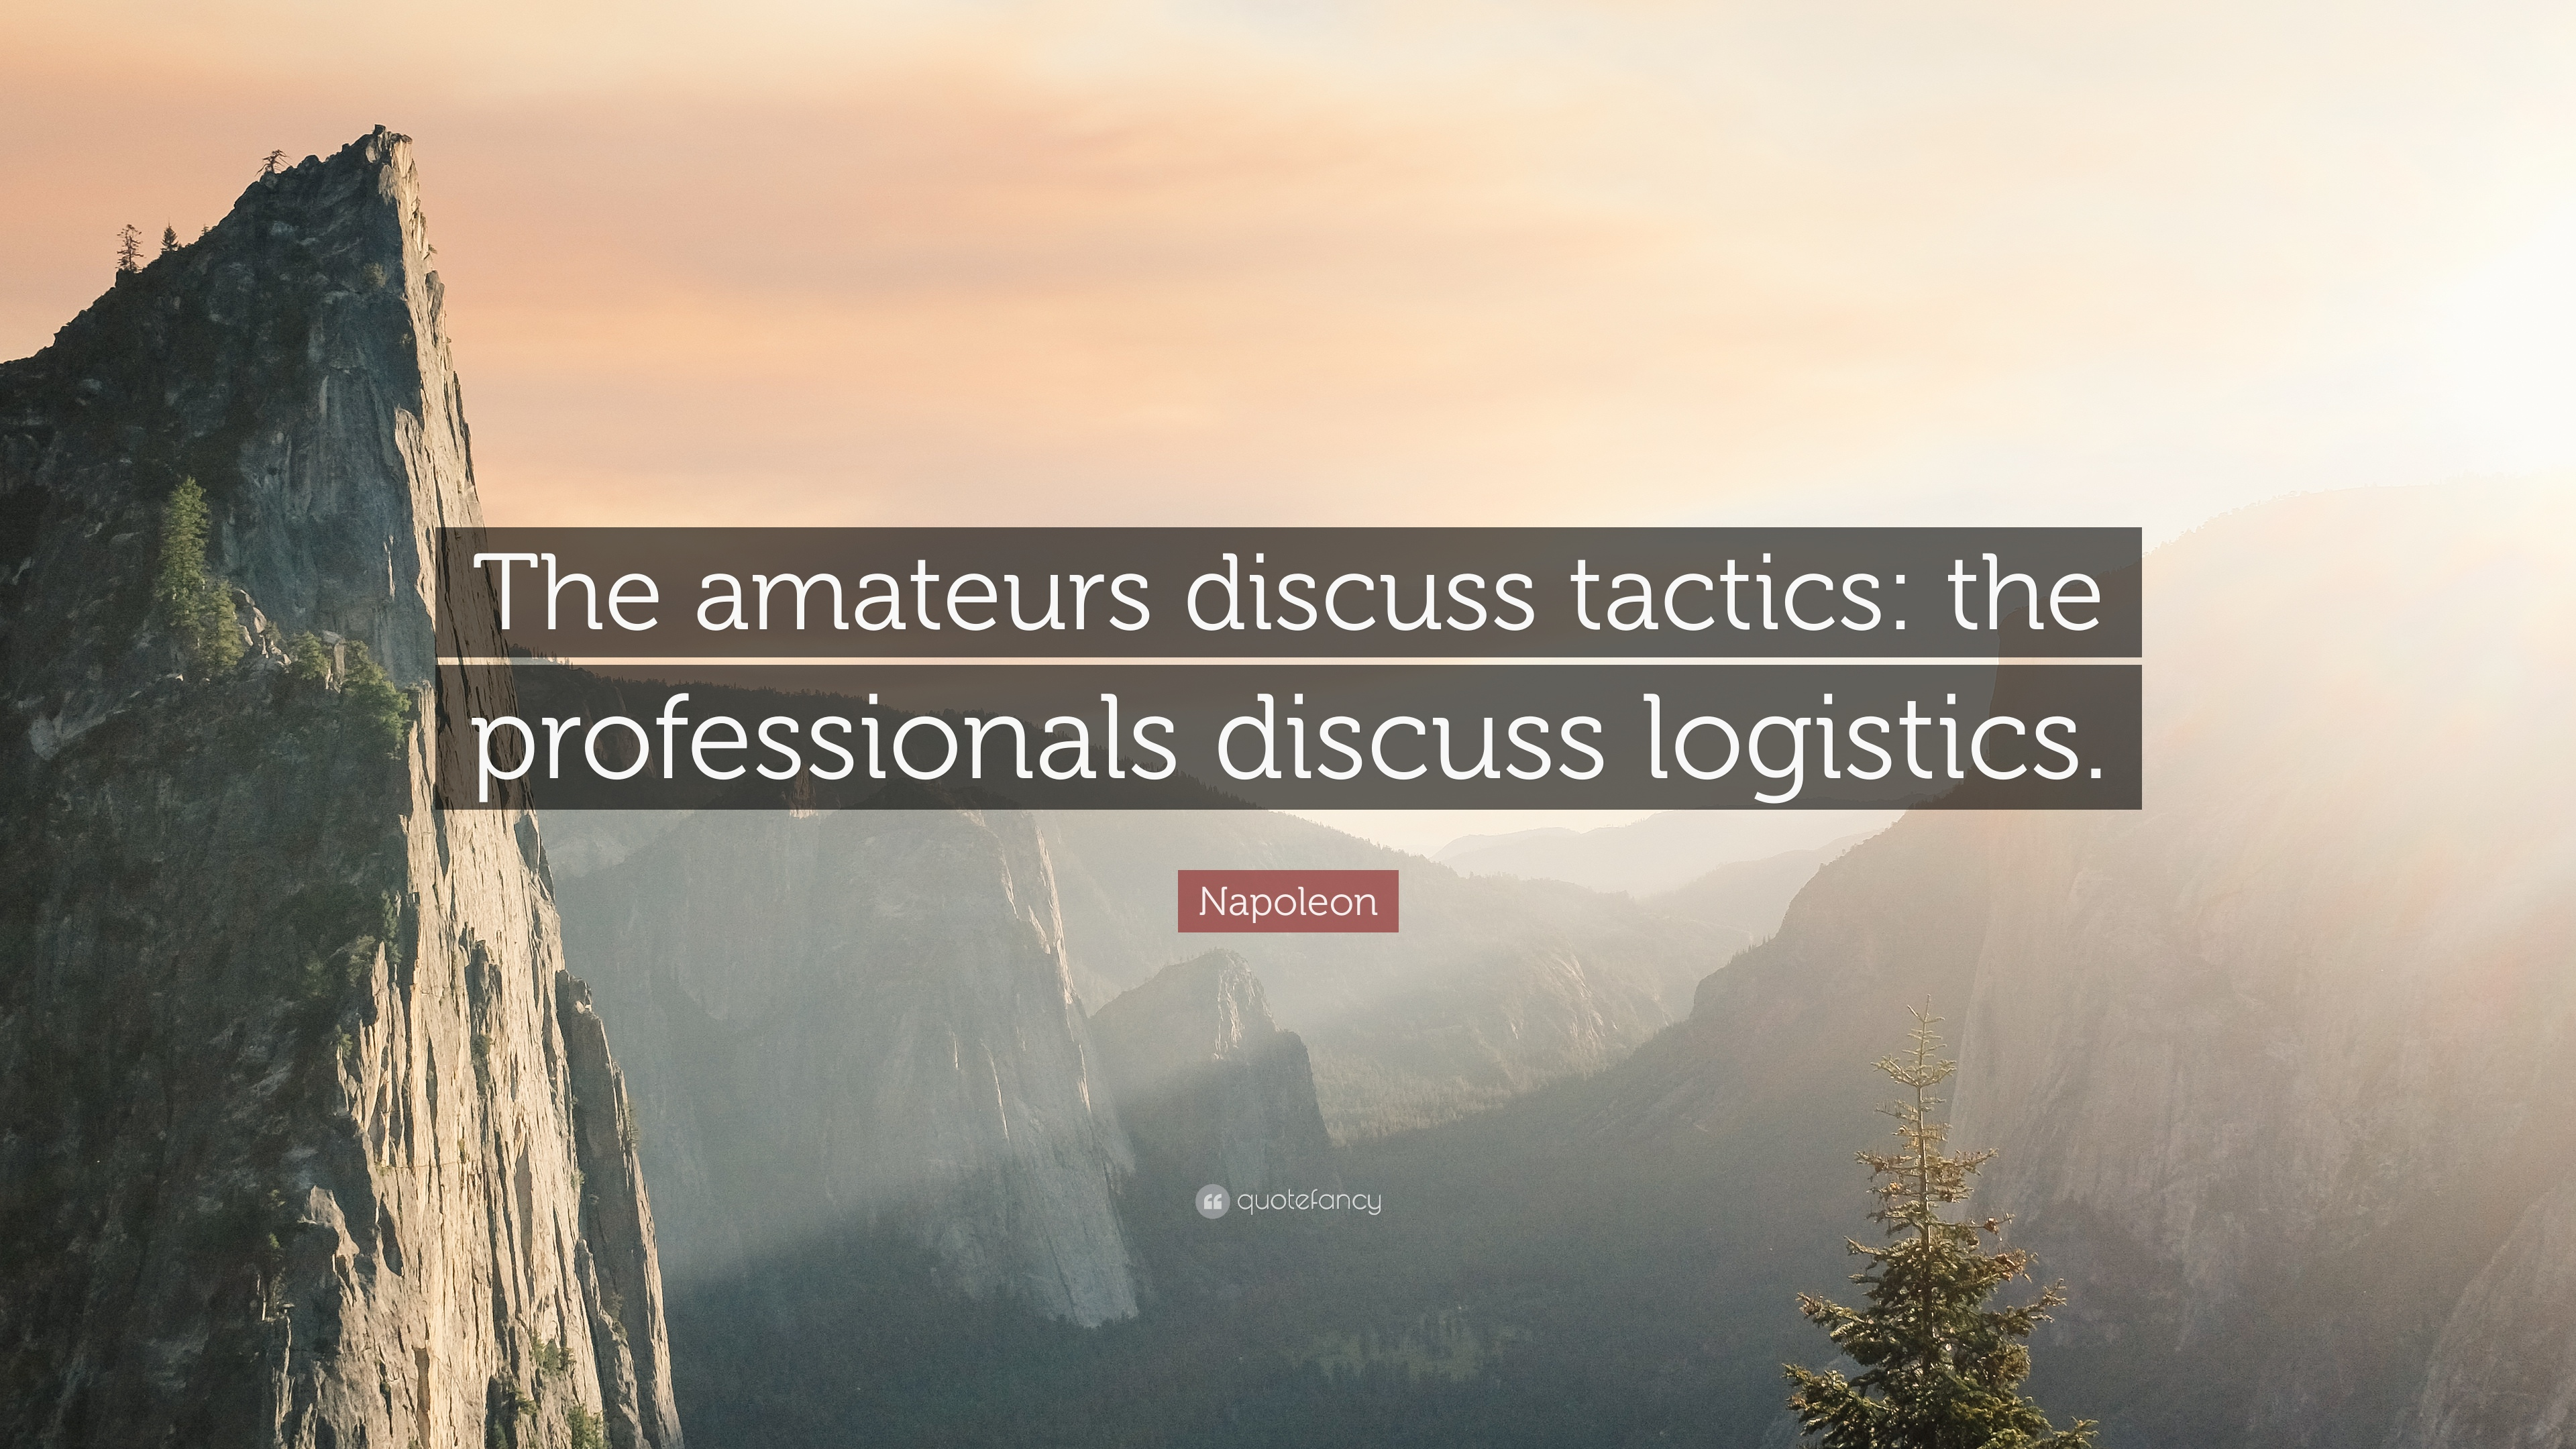 Amateurs talk about tactics, but professionals study